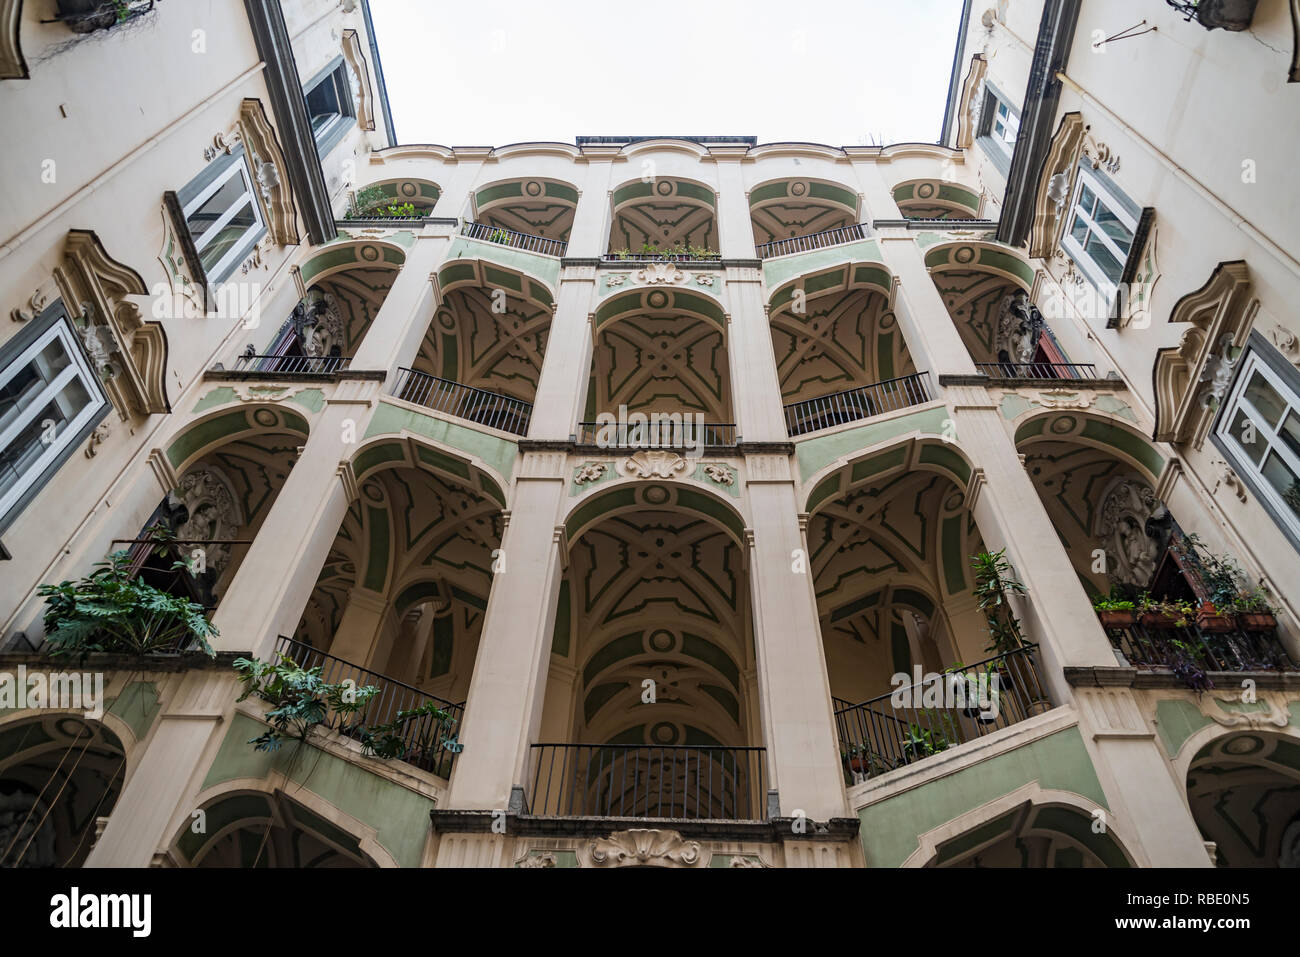 Interior of ancient medieval Spanish palace, Naples Italy - Stock Image